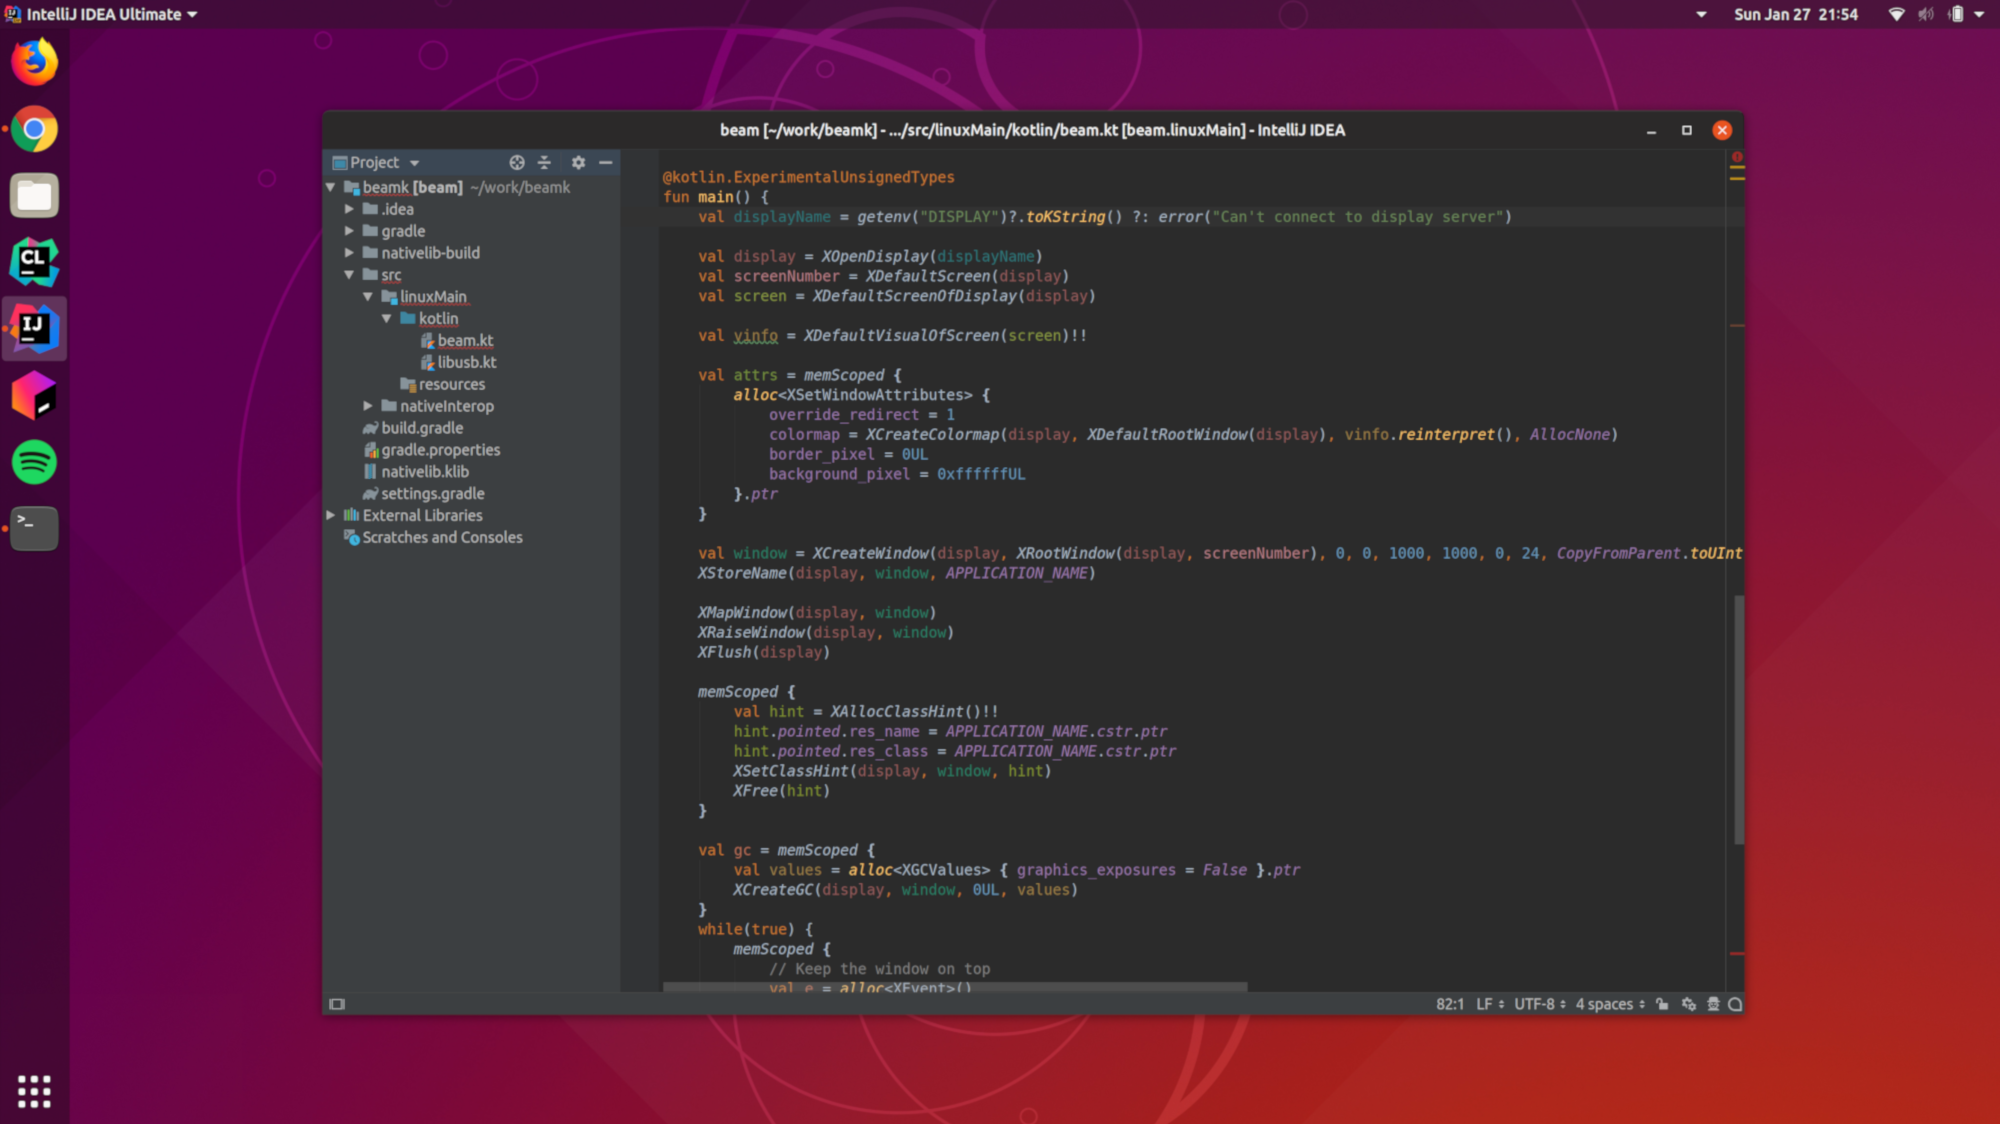 IntelliJ IDEA 2019.1 EAP running on Ubuntu 18.10